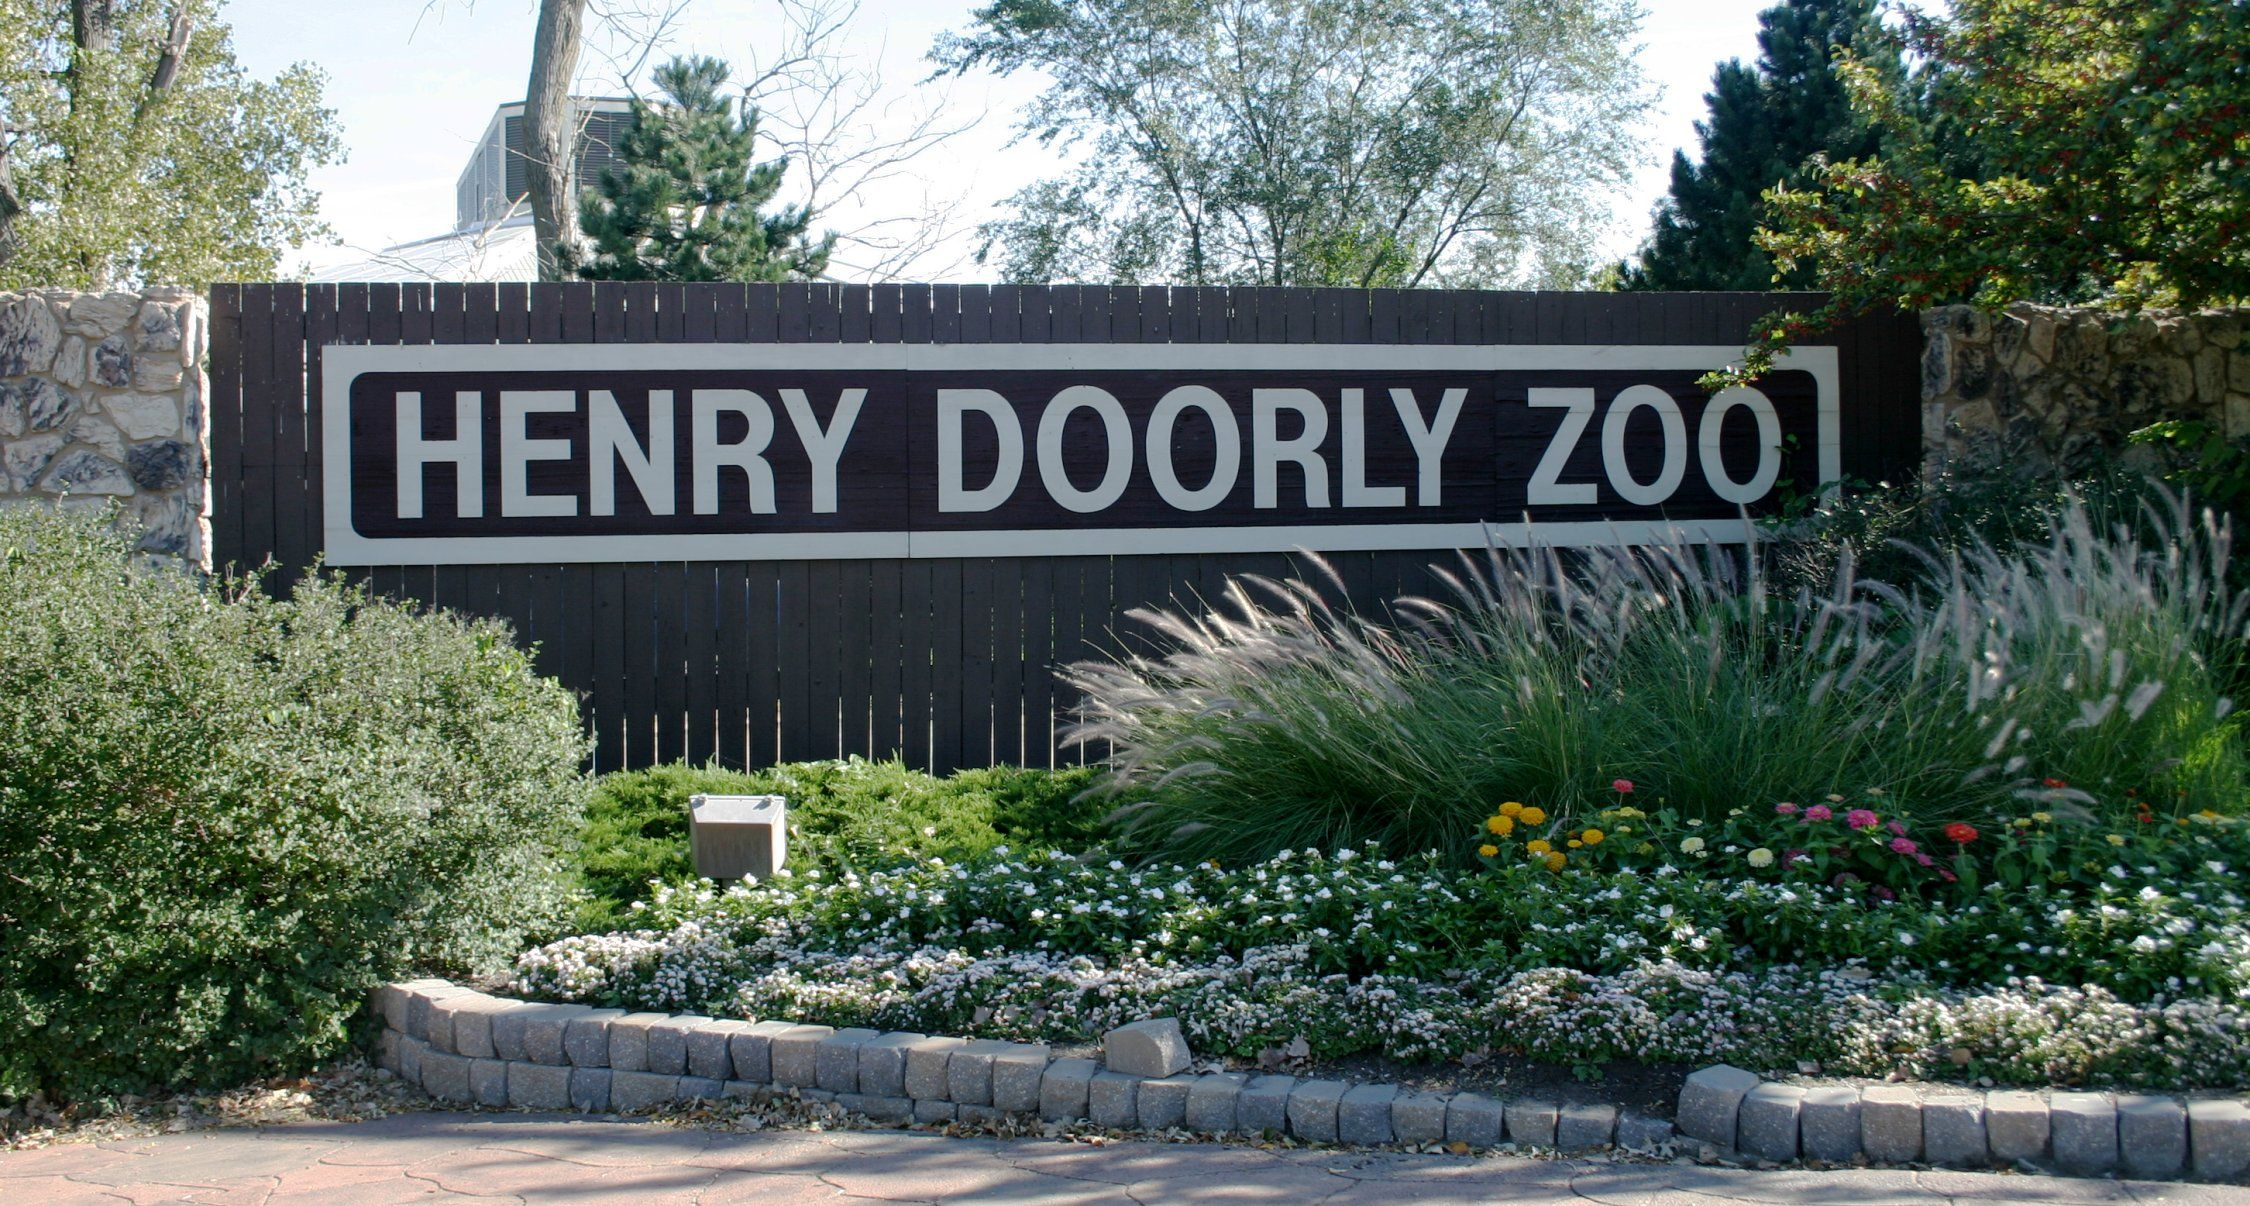 biggest zoos in the world - Henry Doorly Zoo